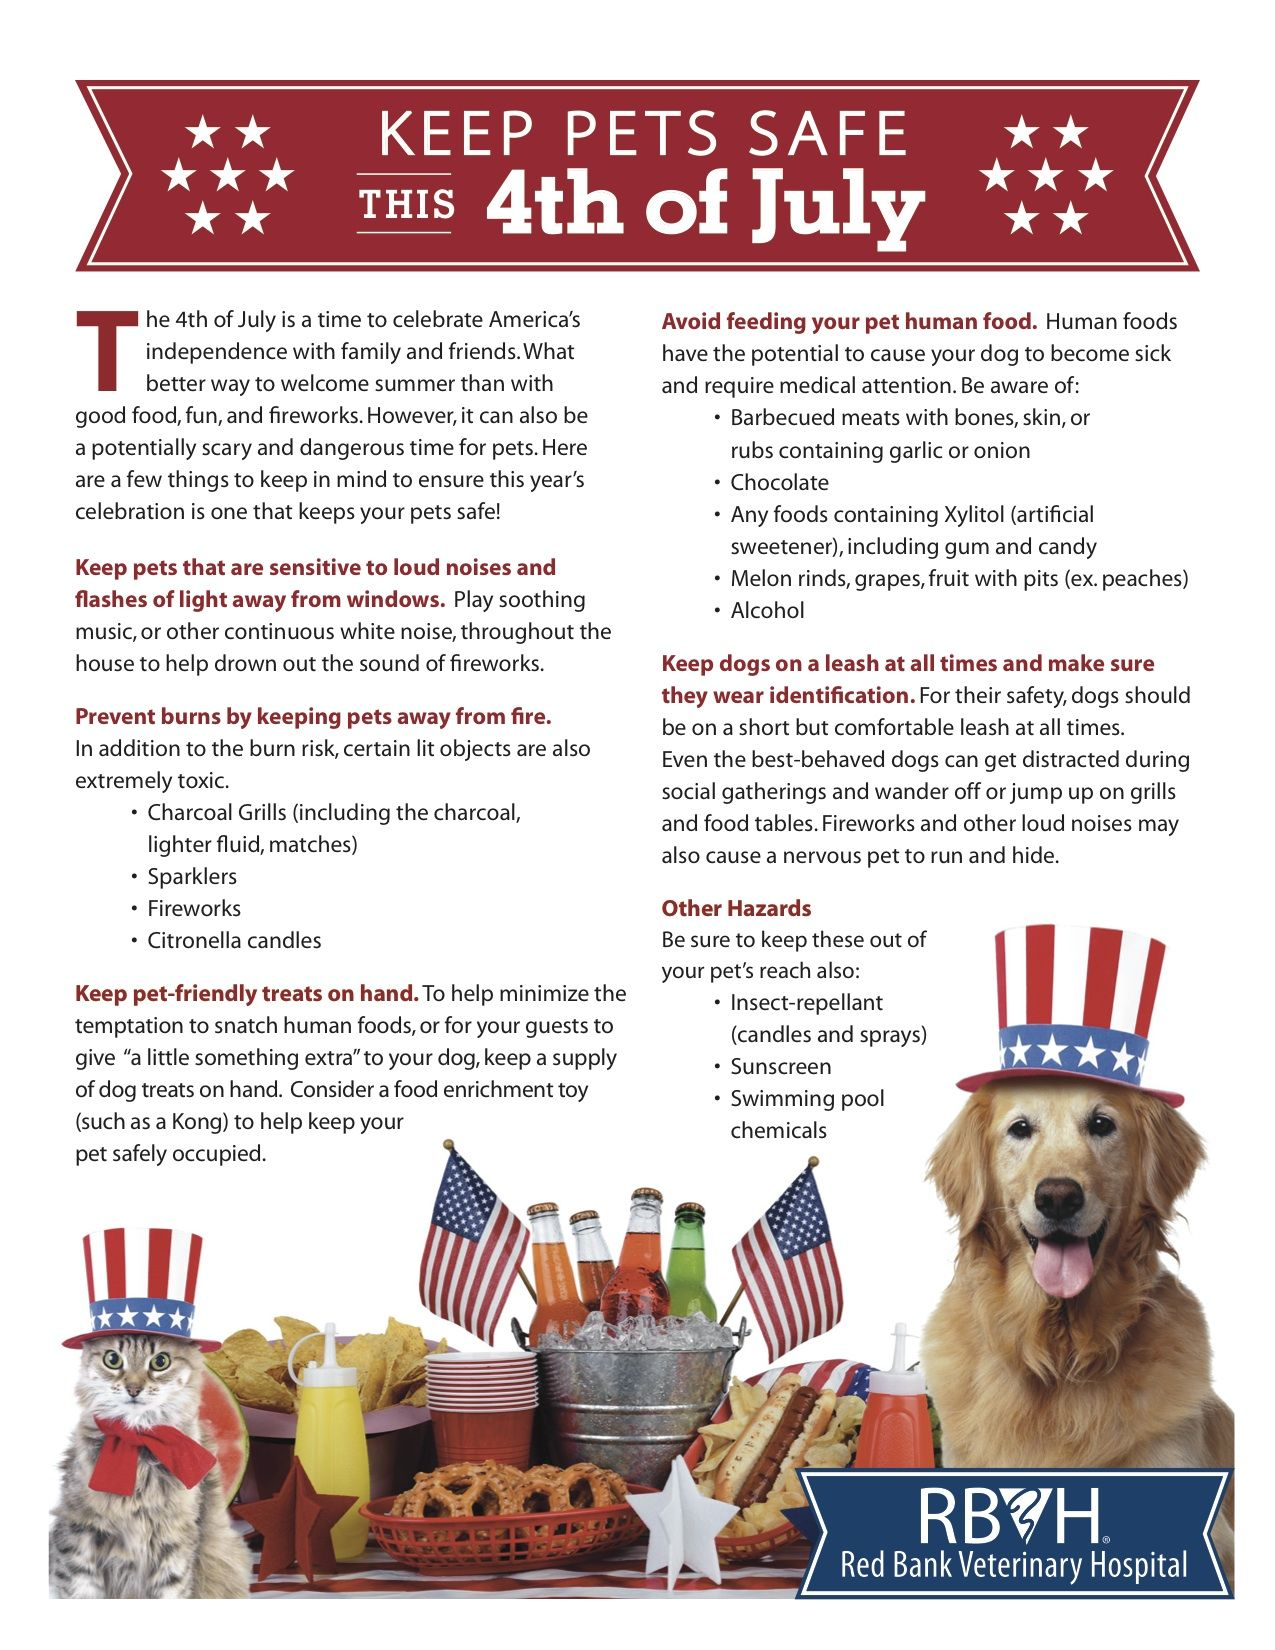 Check Out These Tips To Ensure Your 4th Of July Holiday Is Safe